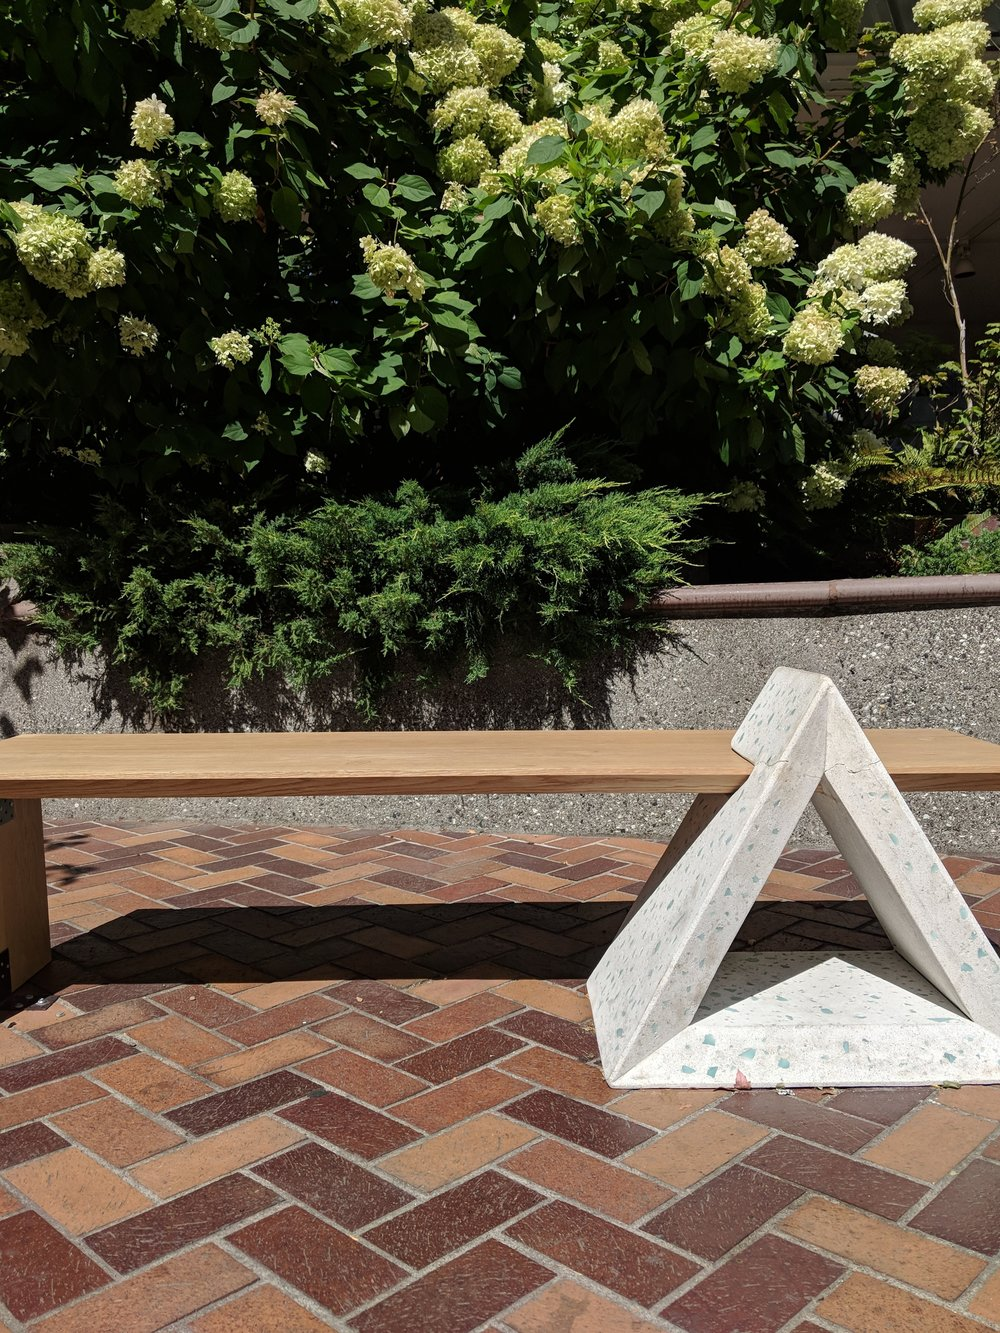 Those blue bits glinting in the white triangle capture solar energy. At night the bench becomes luminescent.